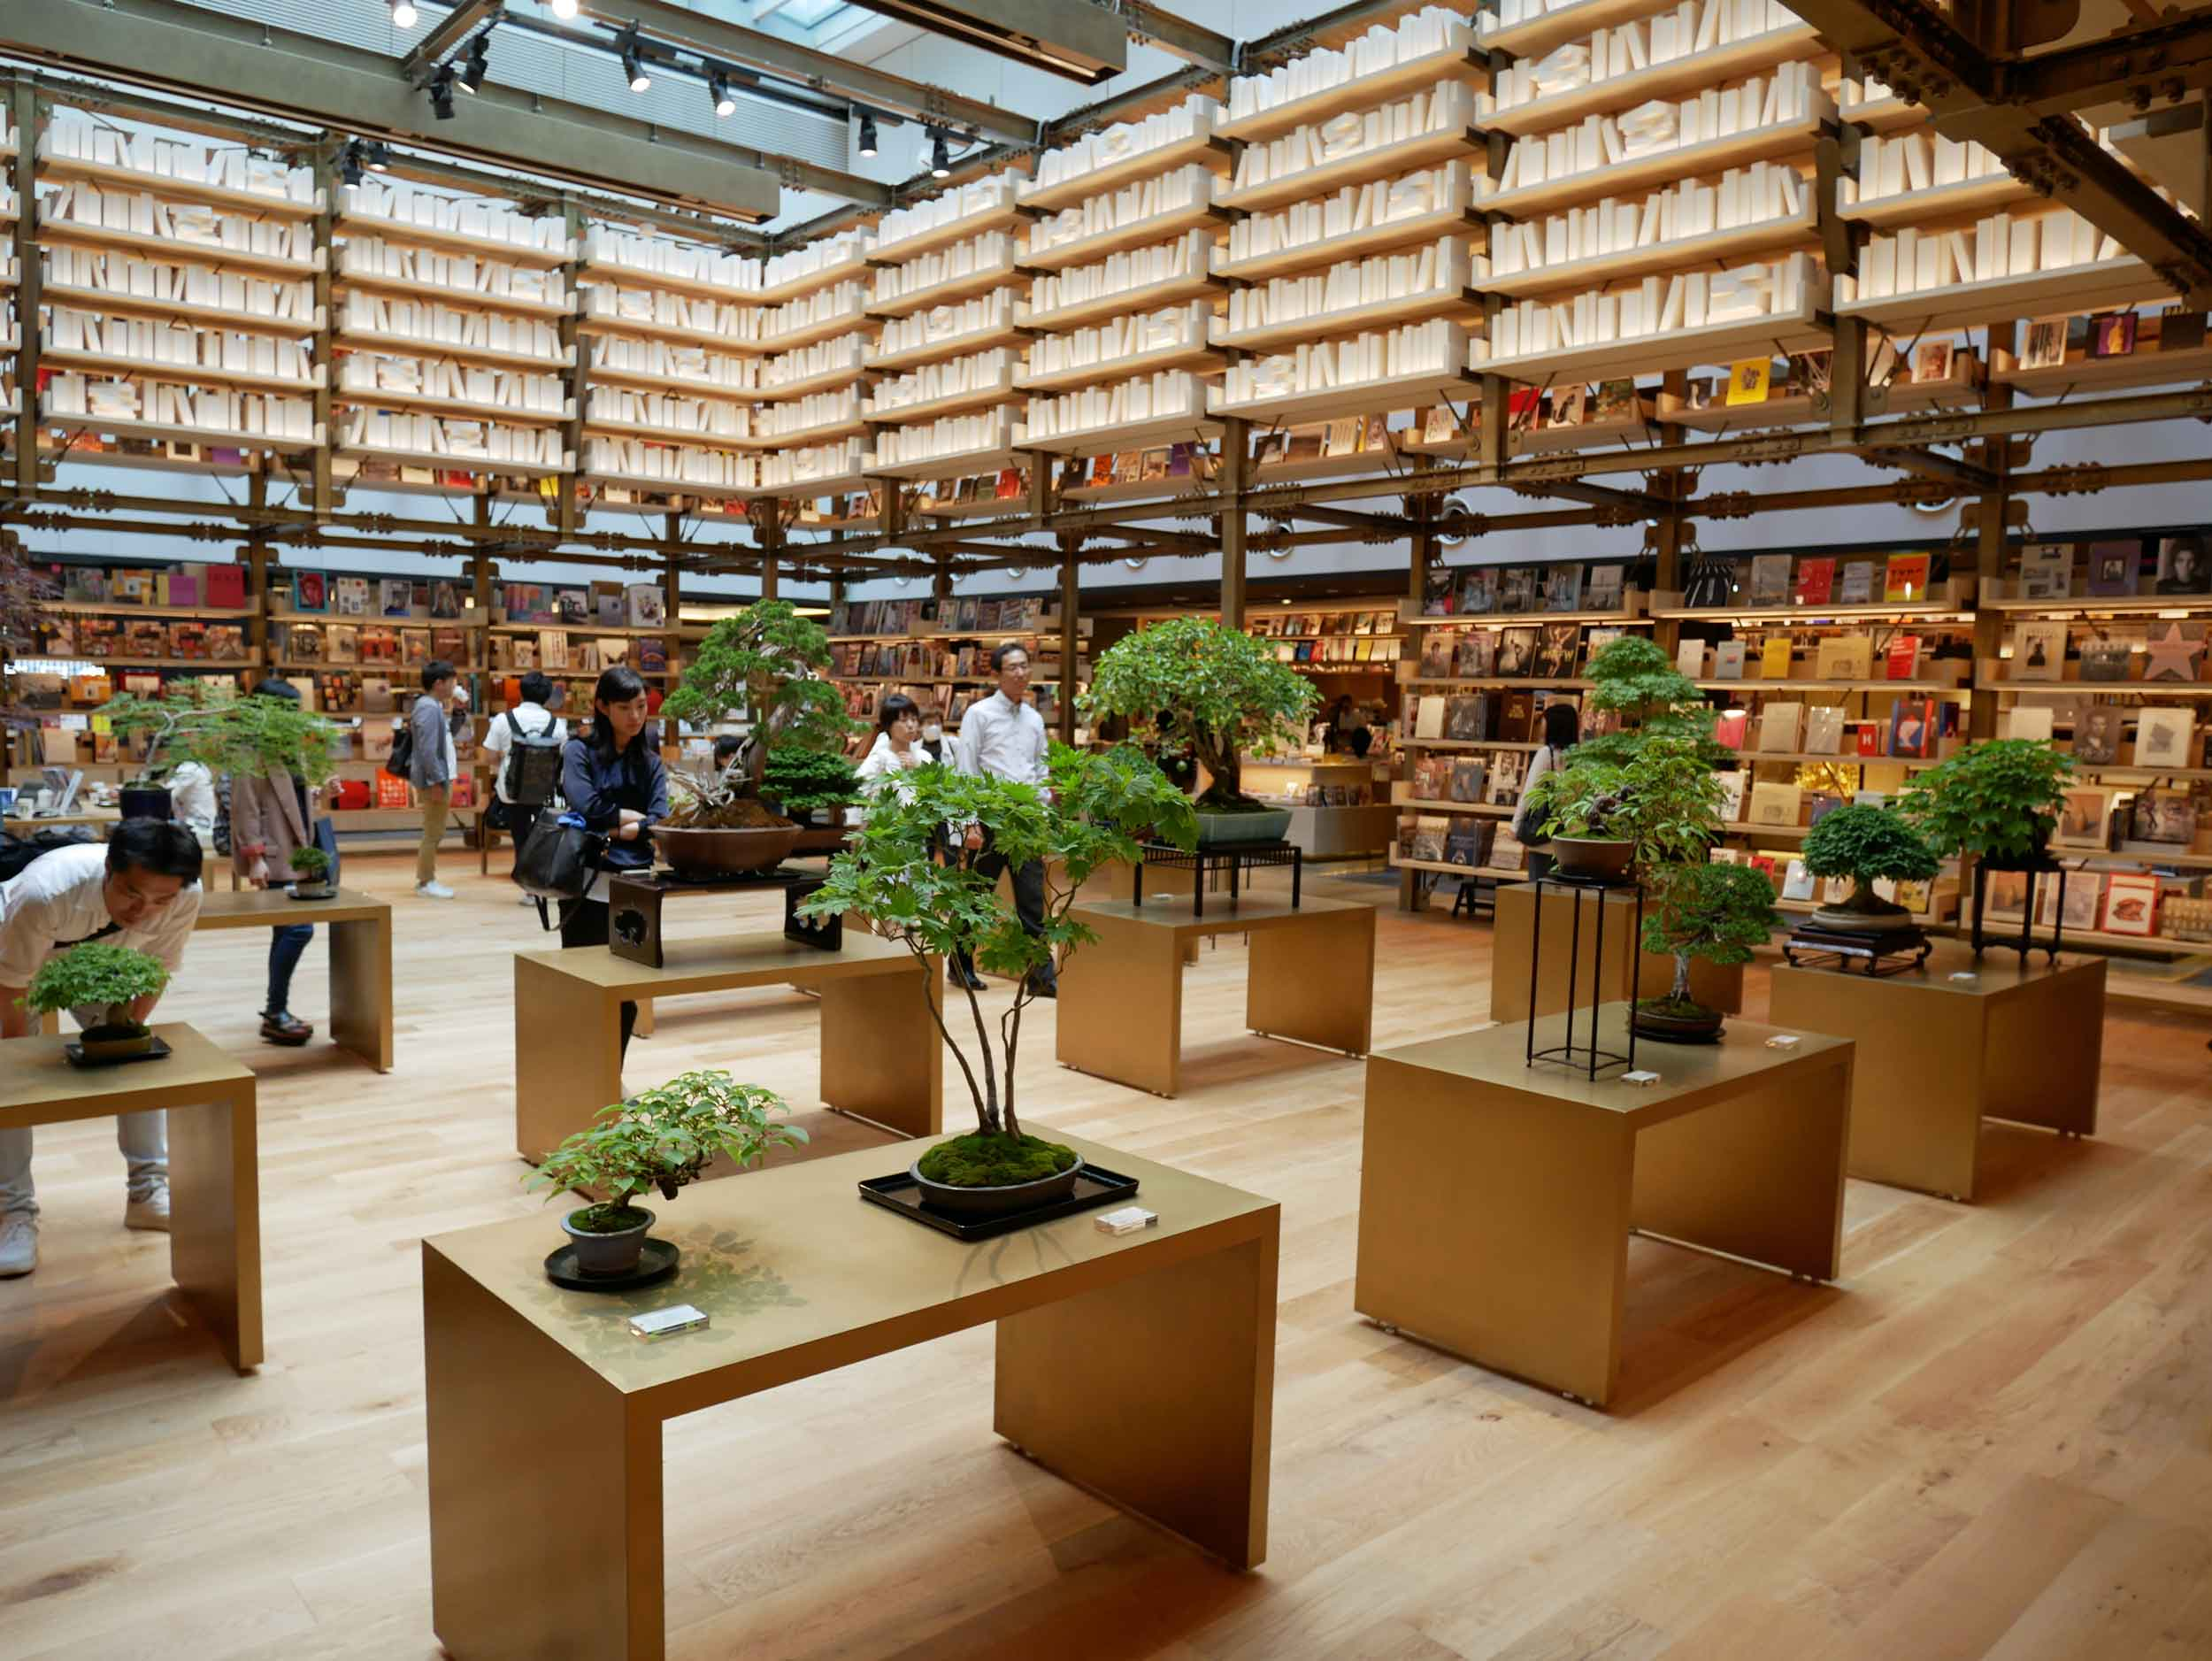 The sister to yesterday's bookstore, Ginza Six is crowned with an outpost of Tsutaya bookshop.